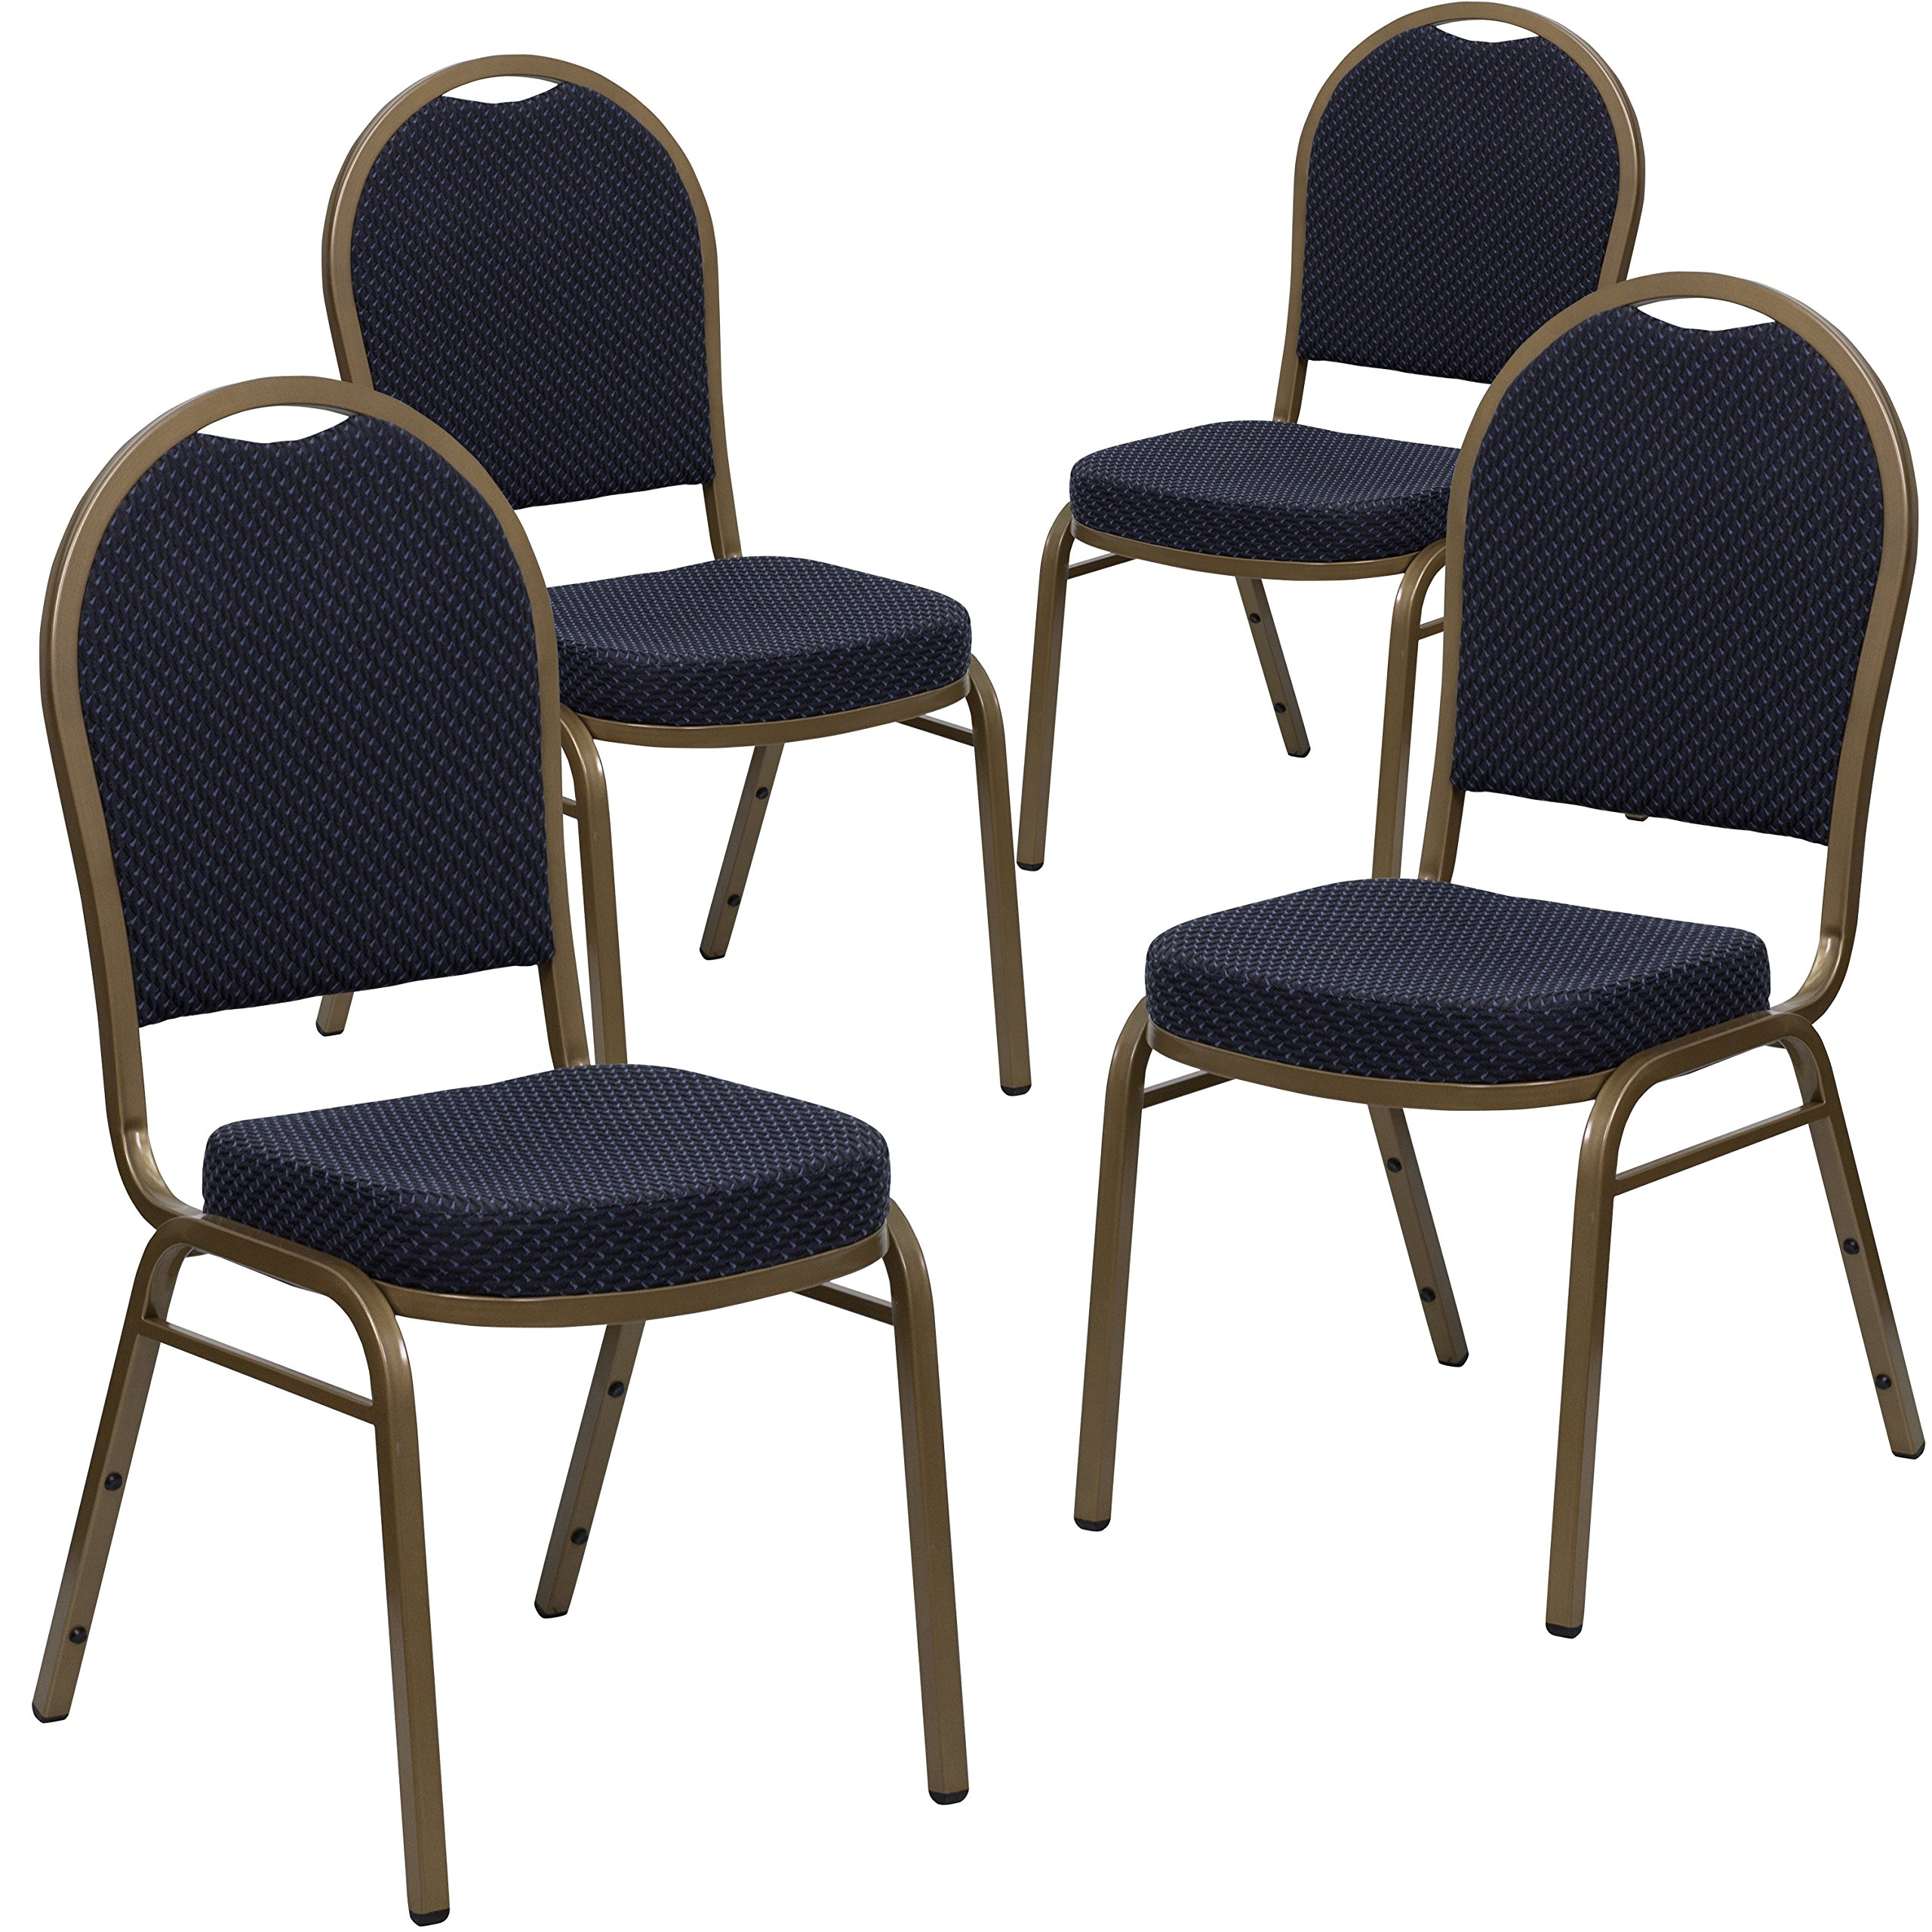 Flash Furniture 4 Pk. HERCULES Series Dome Back Stacking Banquet Chair in Navy Patterned Fabric - Gold Frame